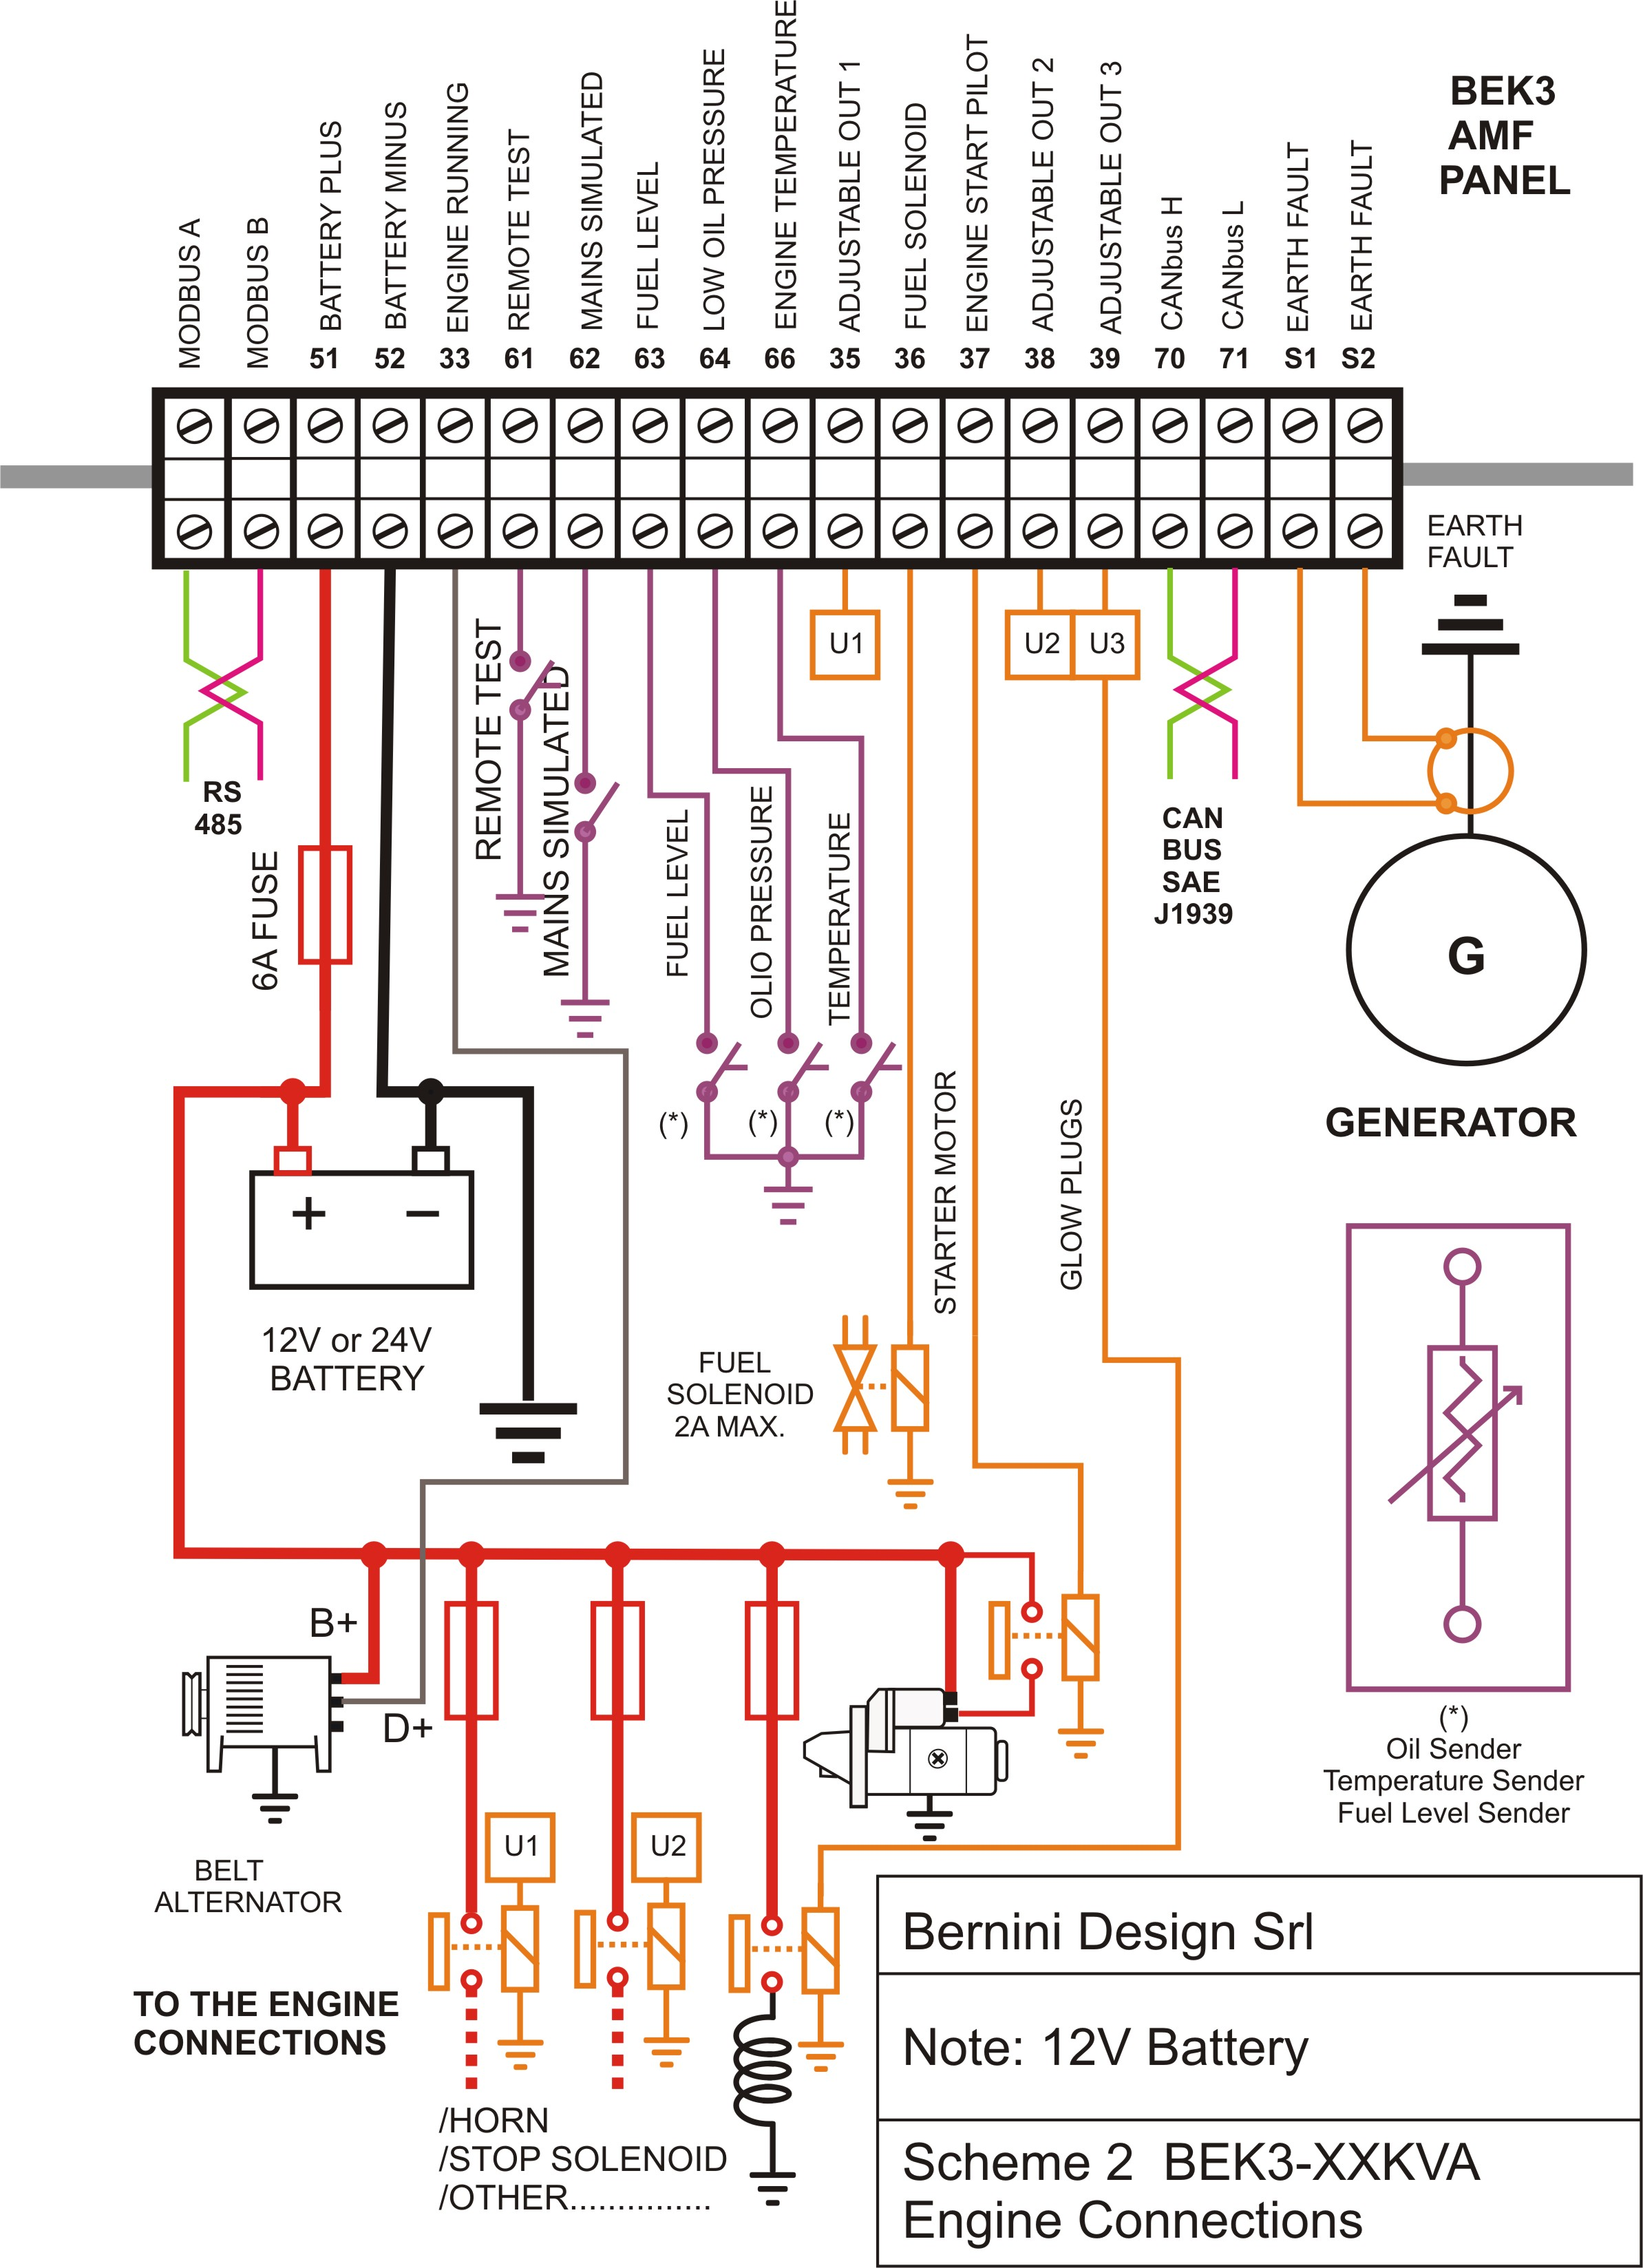 AMF Control Panel Circuit Diagram PDF Engine Connections amf control panel circuit diagram pdf genset controller vcb panel wiring diagram at nearapp.co